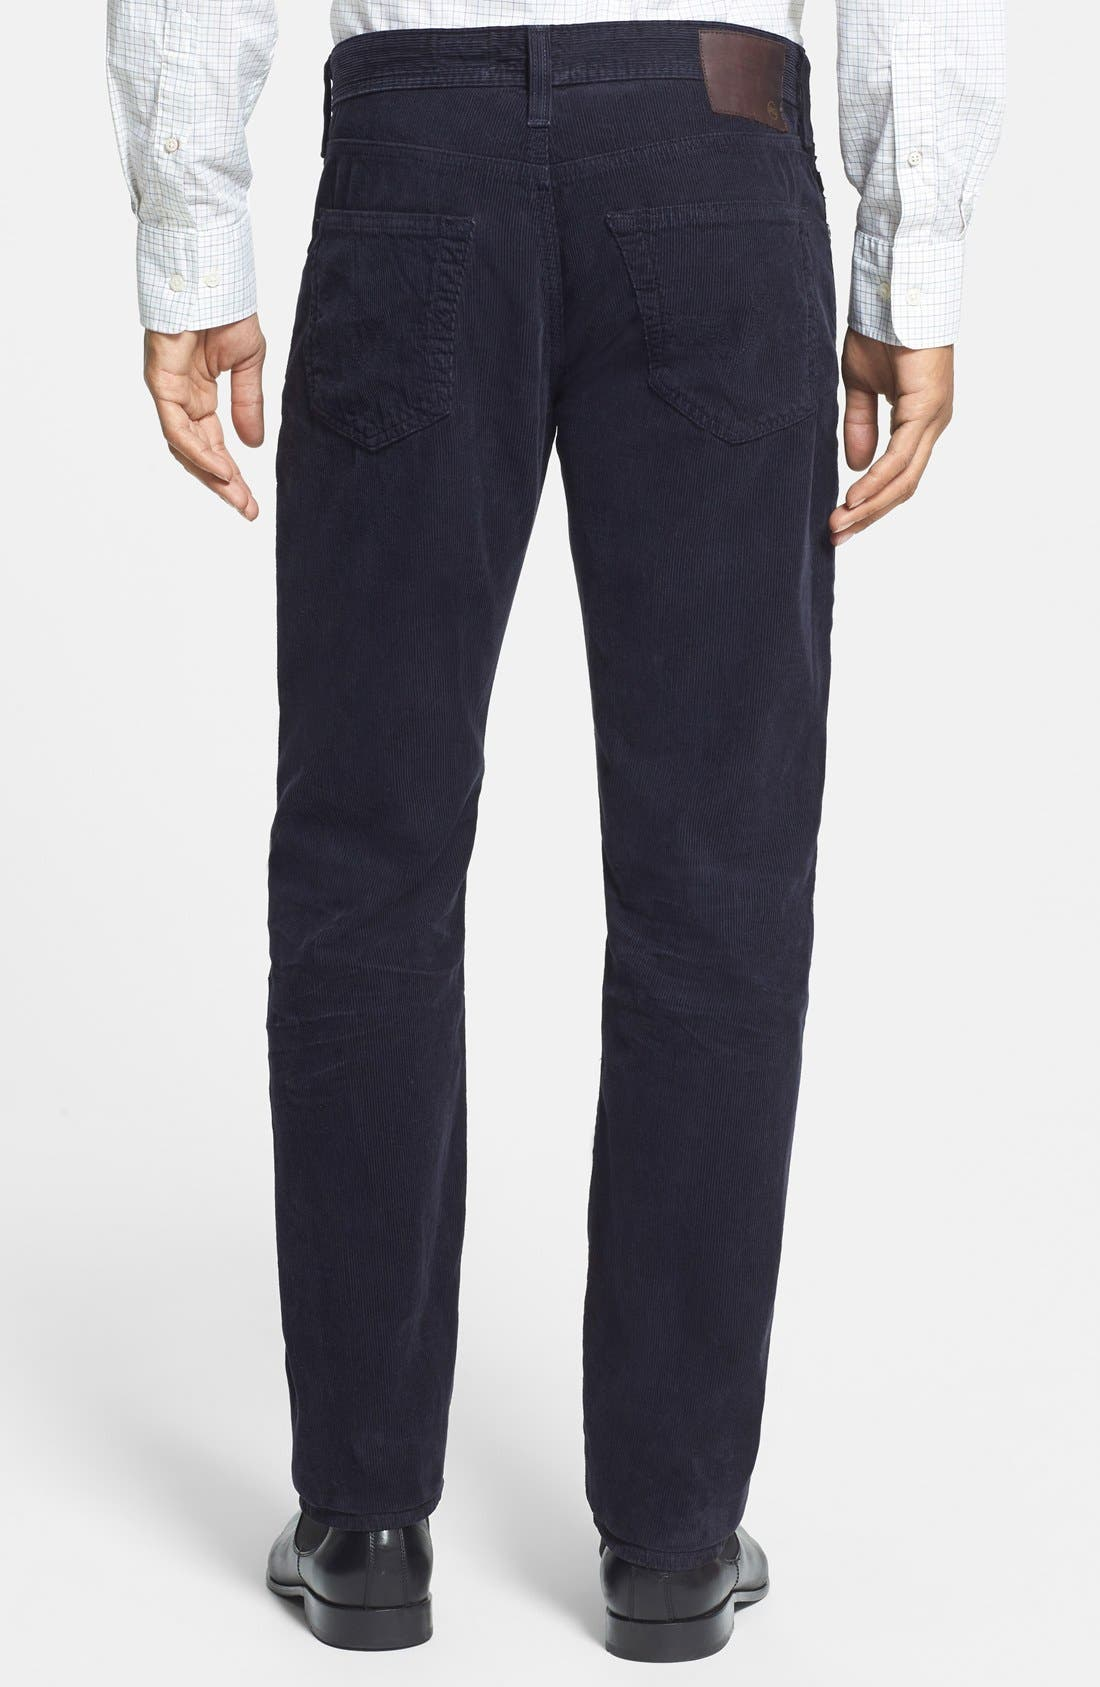 'Graduate' Tailored Straight Leg Corduroy Pants,                             Alternate thumbnail 57, color,